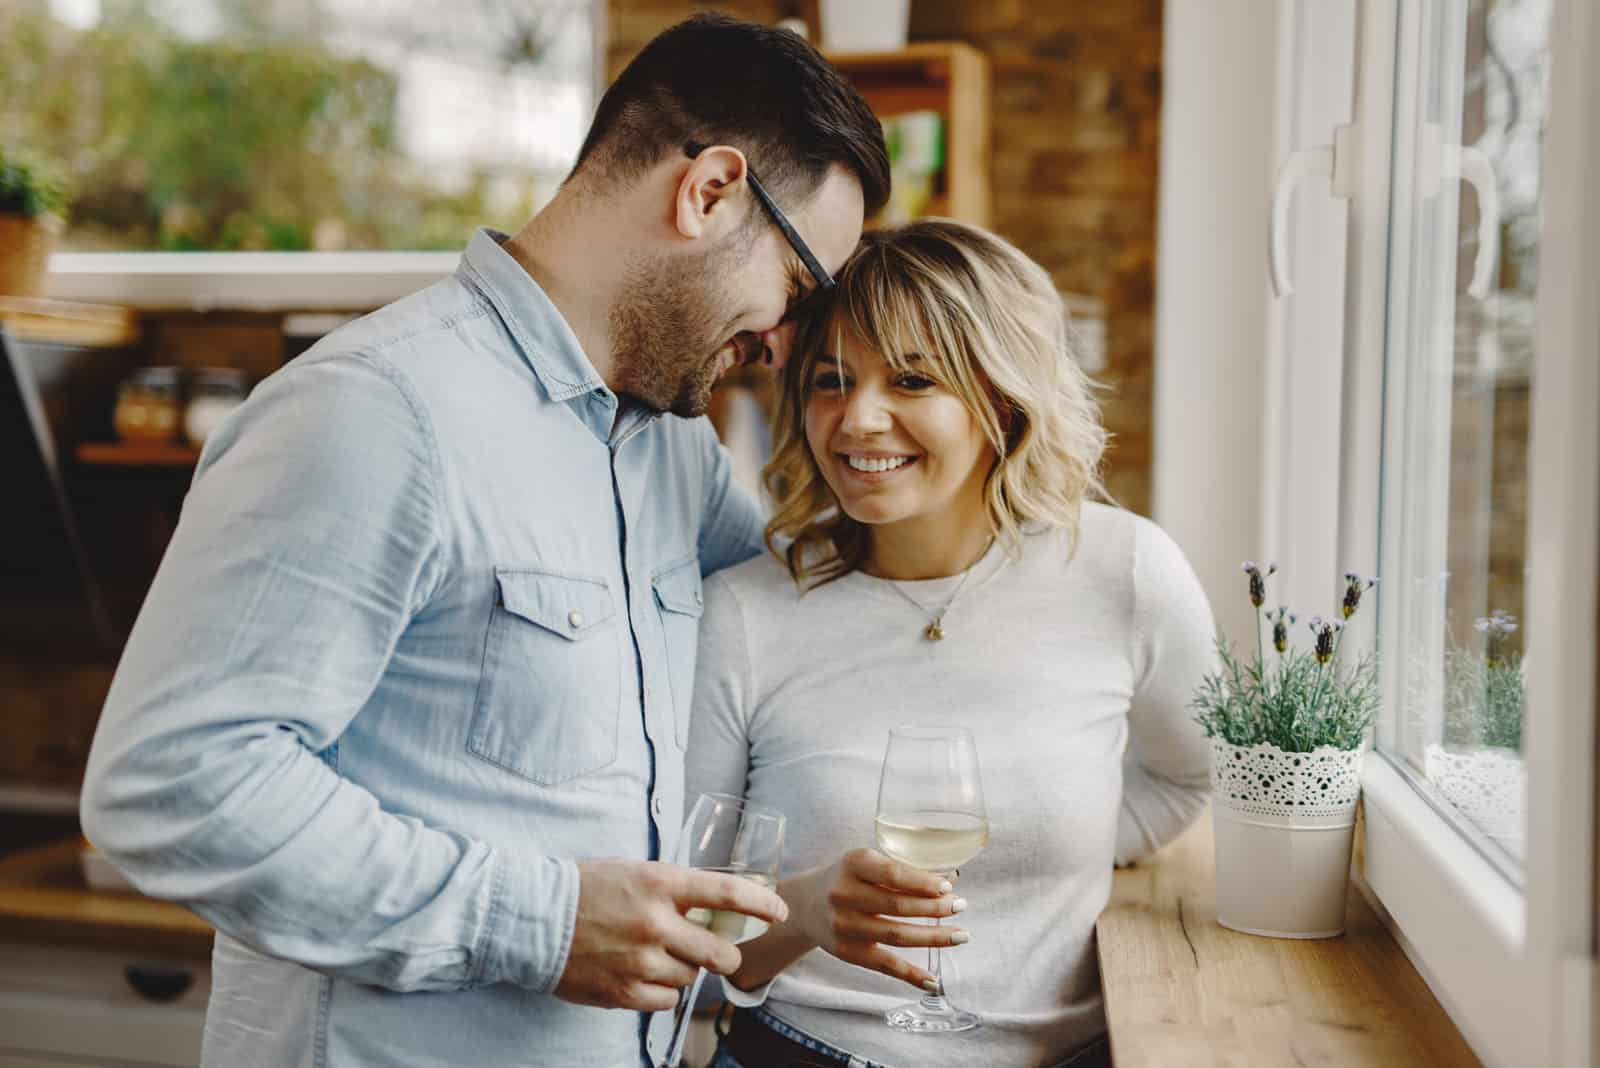 a couple in love laughs while holding glasses of wine